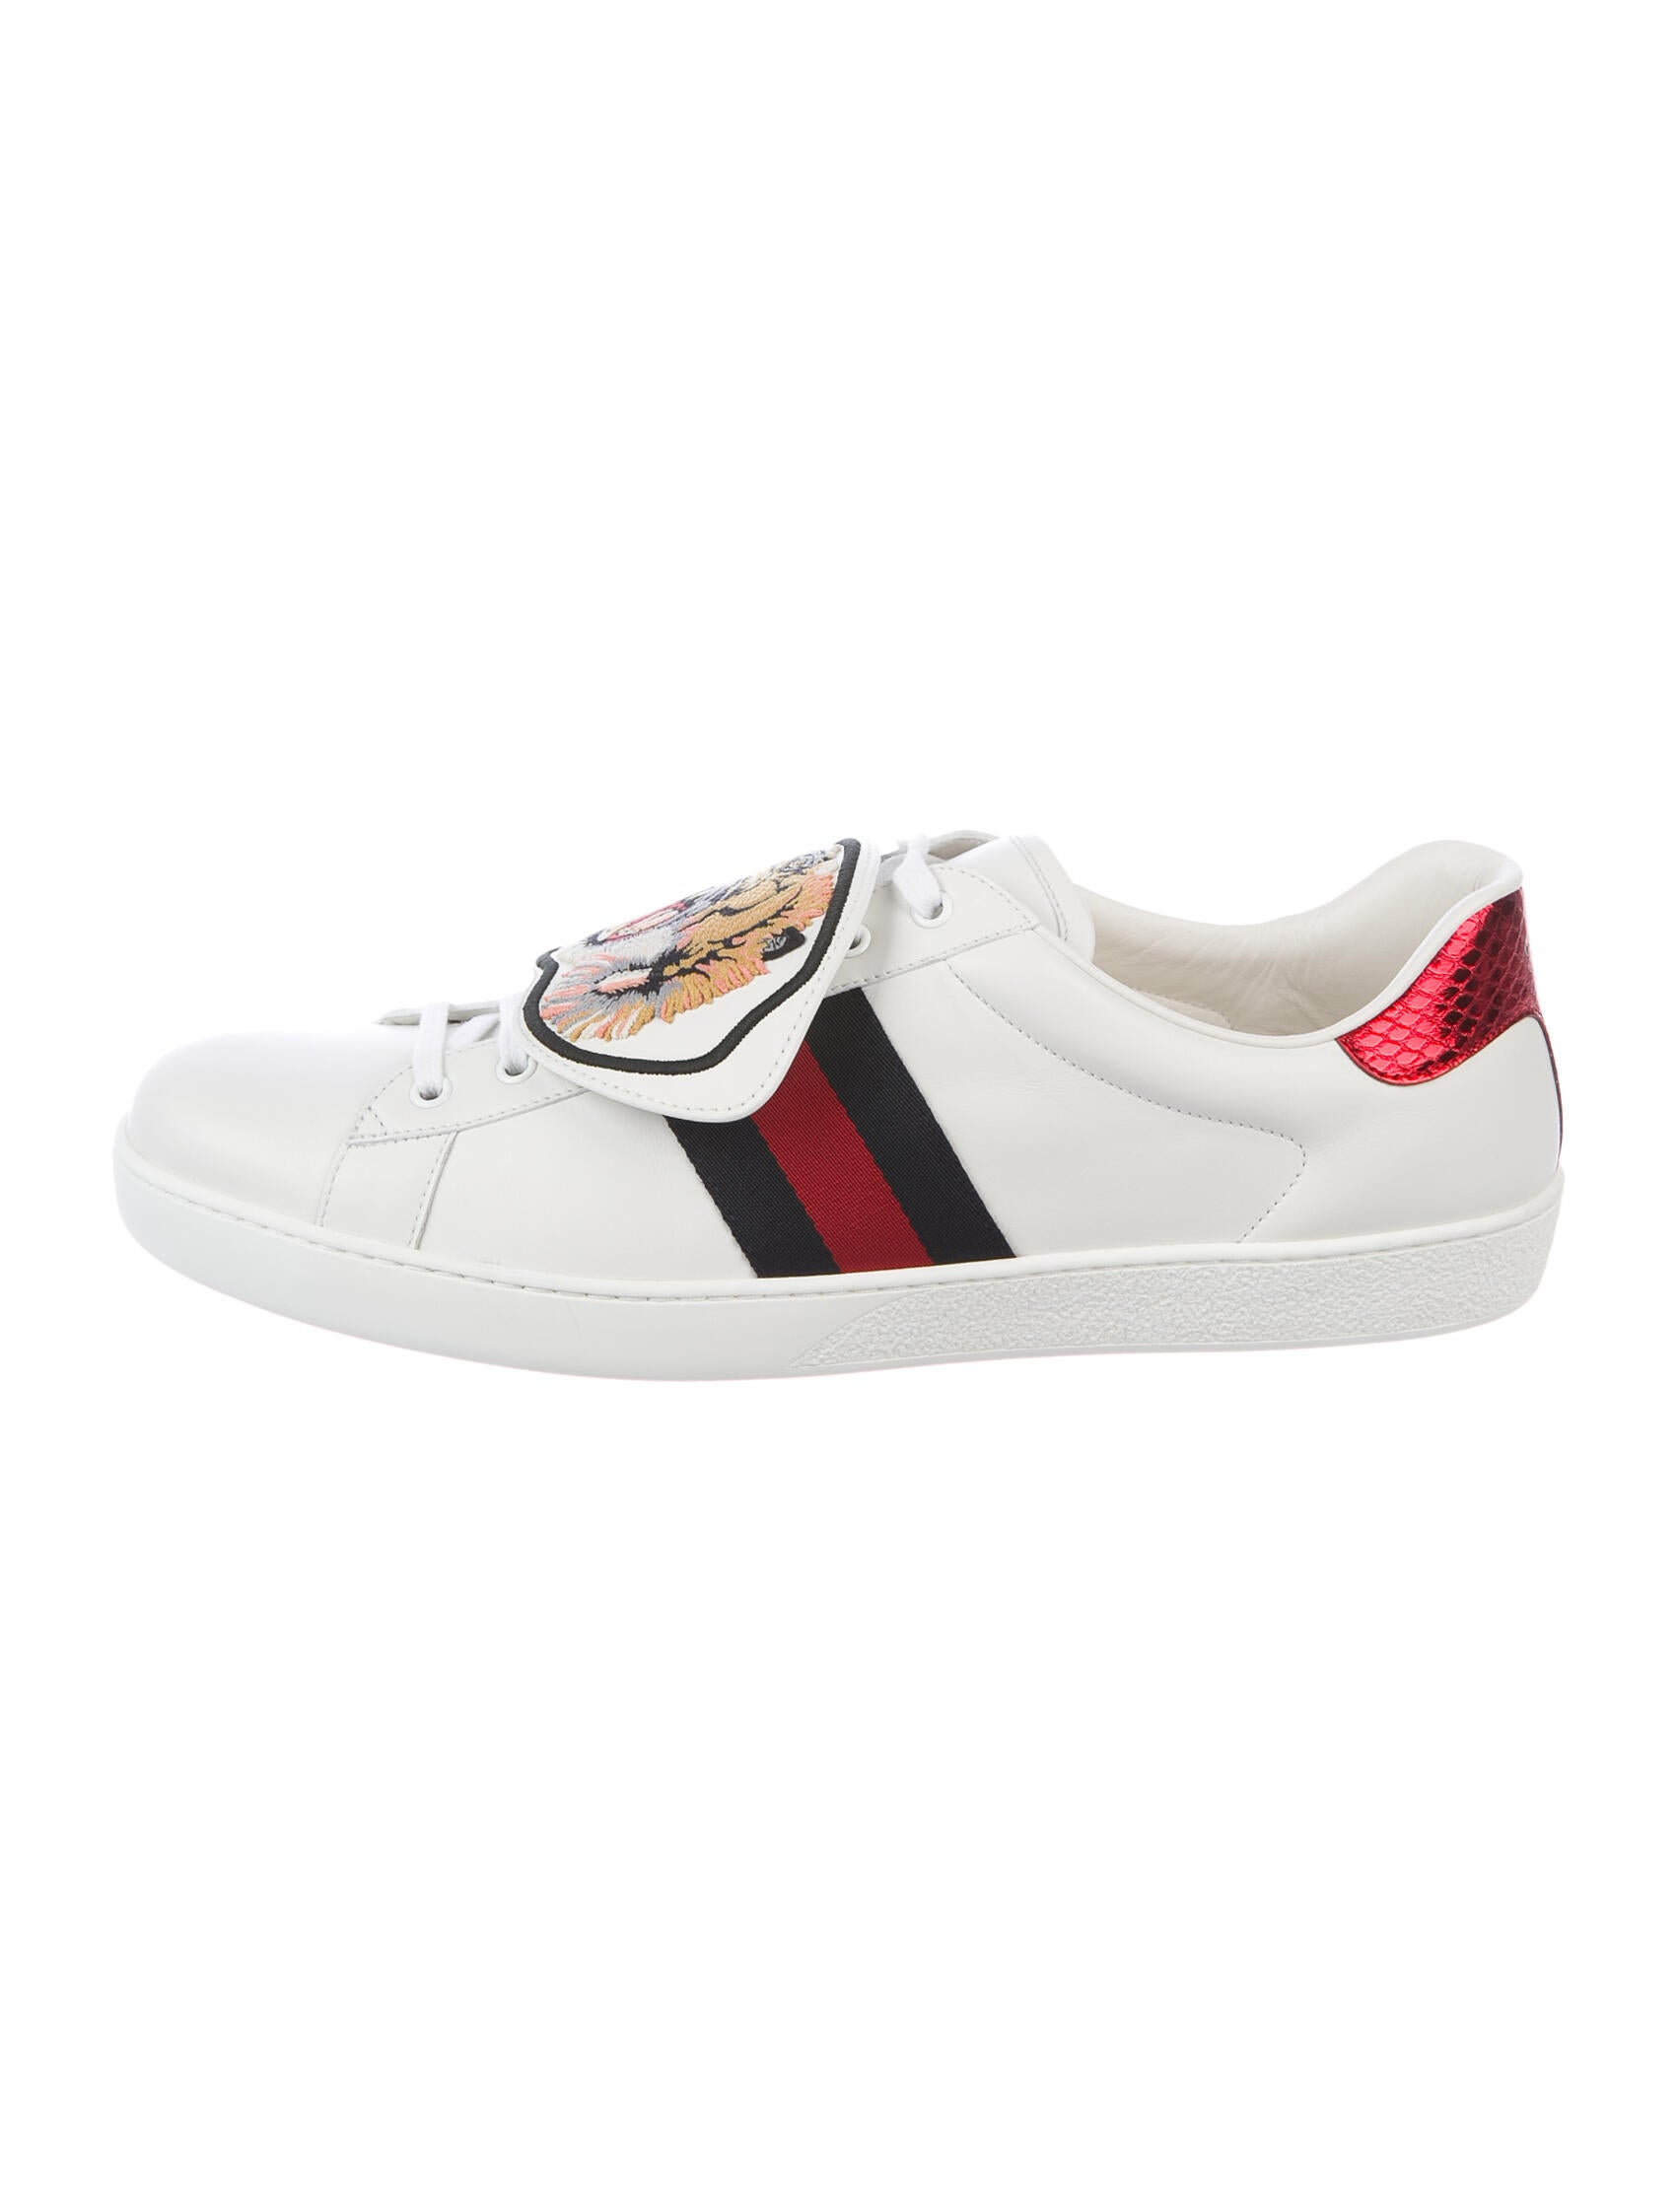 Gucci Ace Tiger Patch Sneakers - Shoes